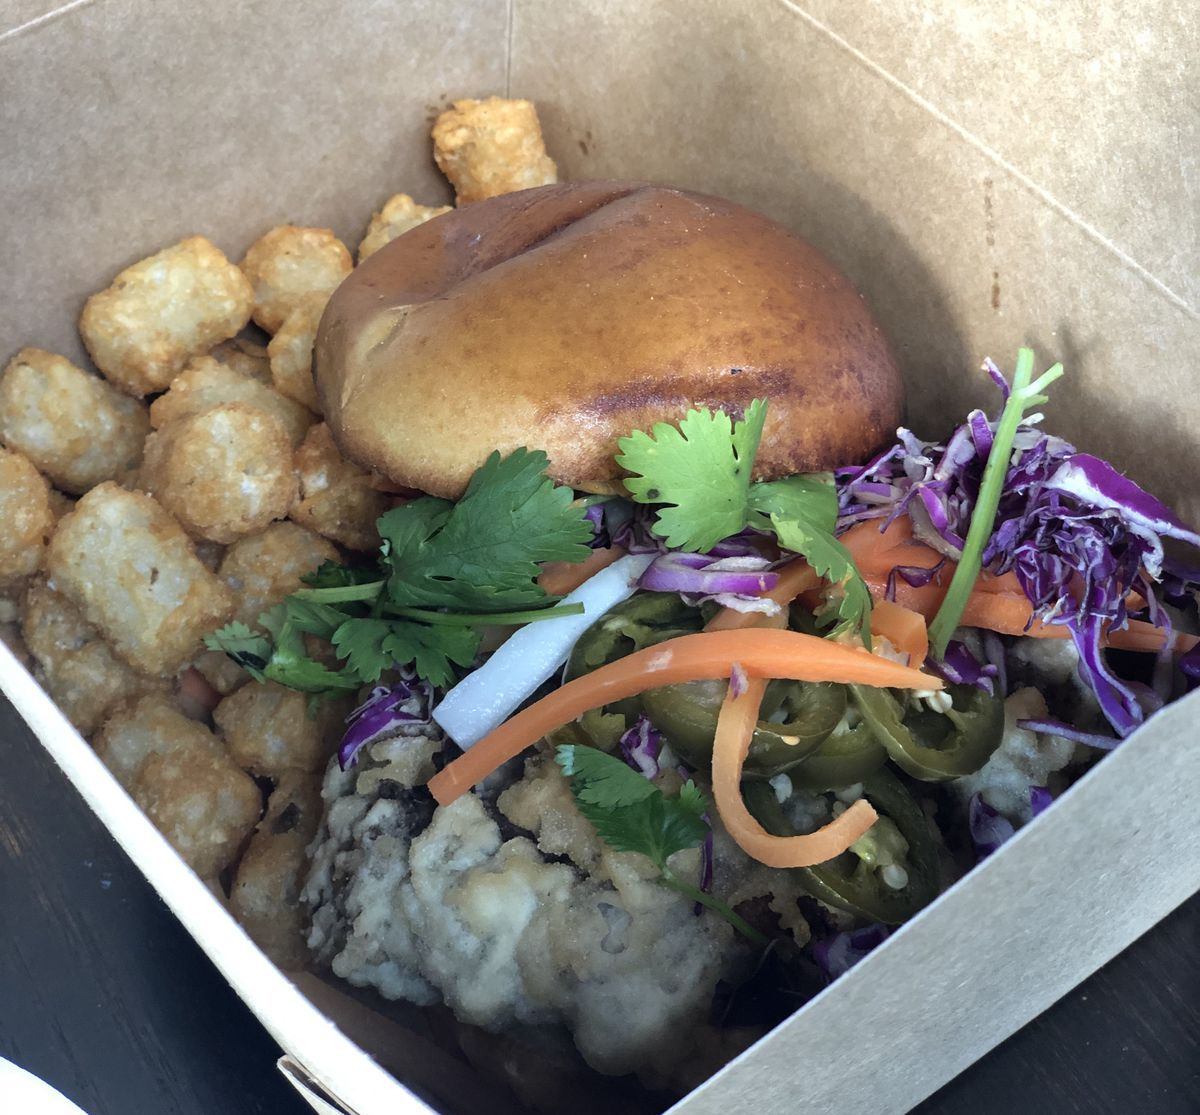 A mound of tater tots balances next to a brioche bun, jalapeno, cabbage, shredded carrot, and other toppings in a takeout container